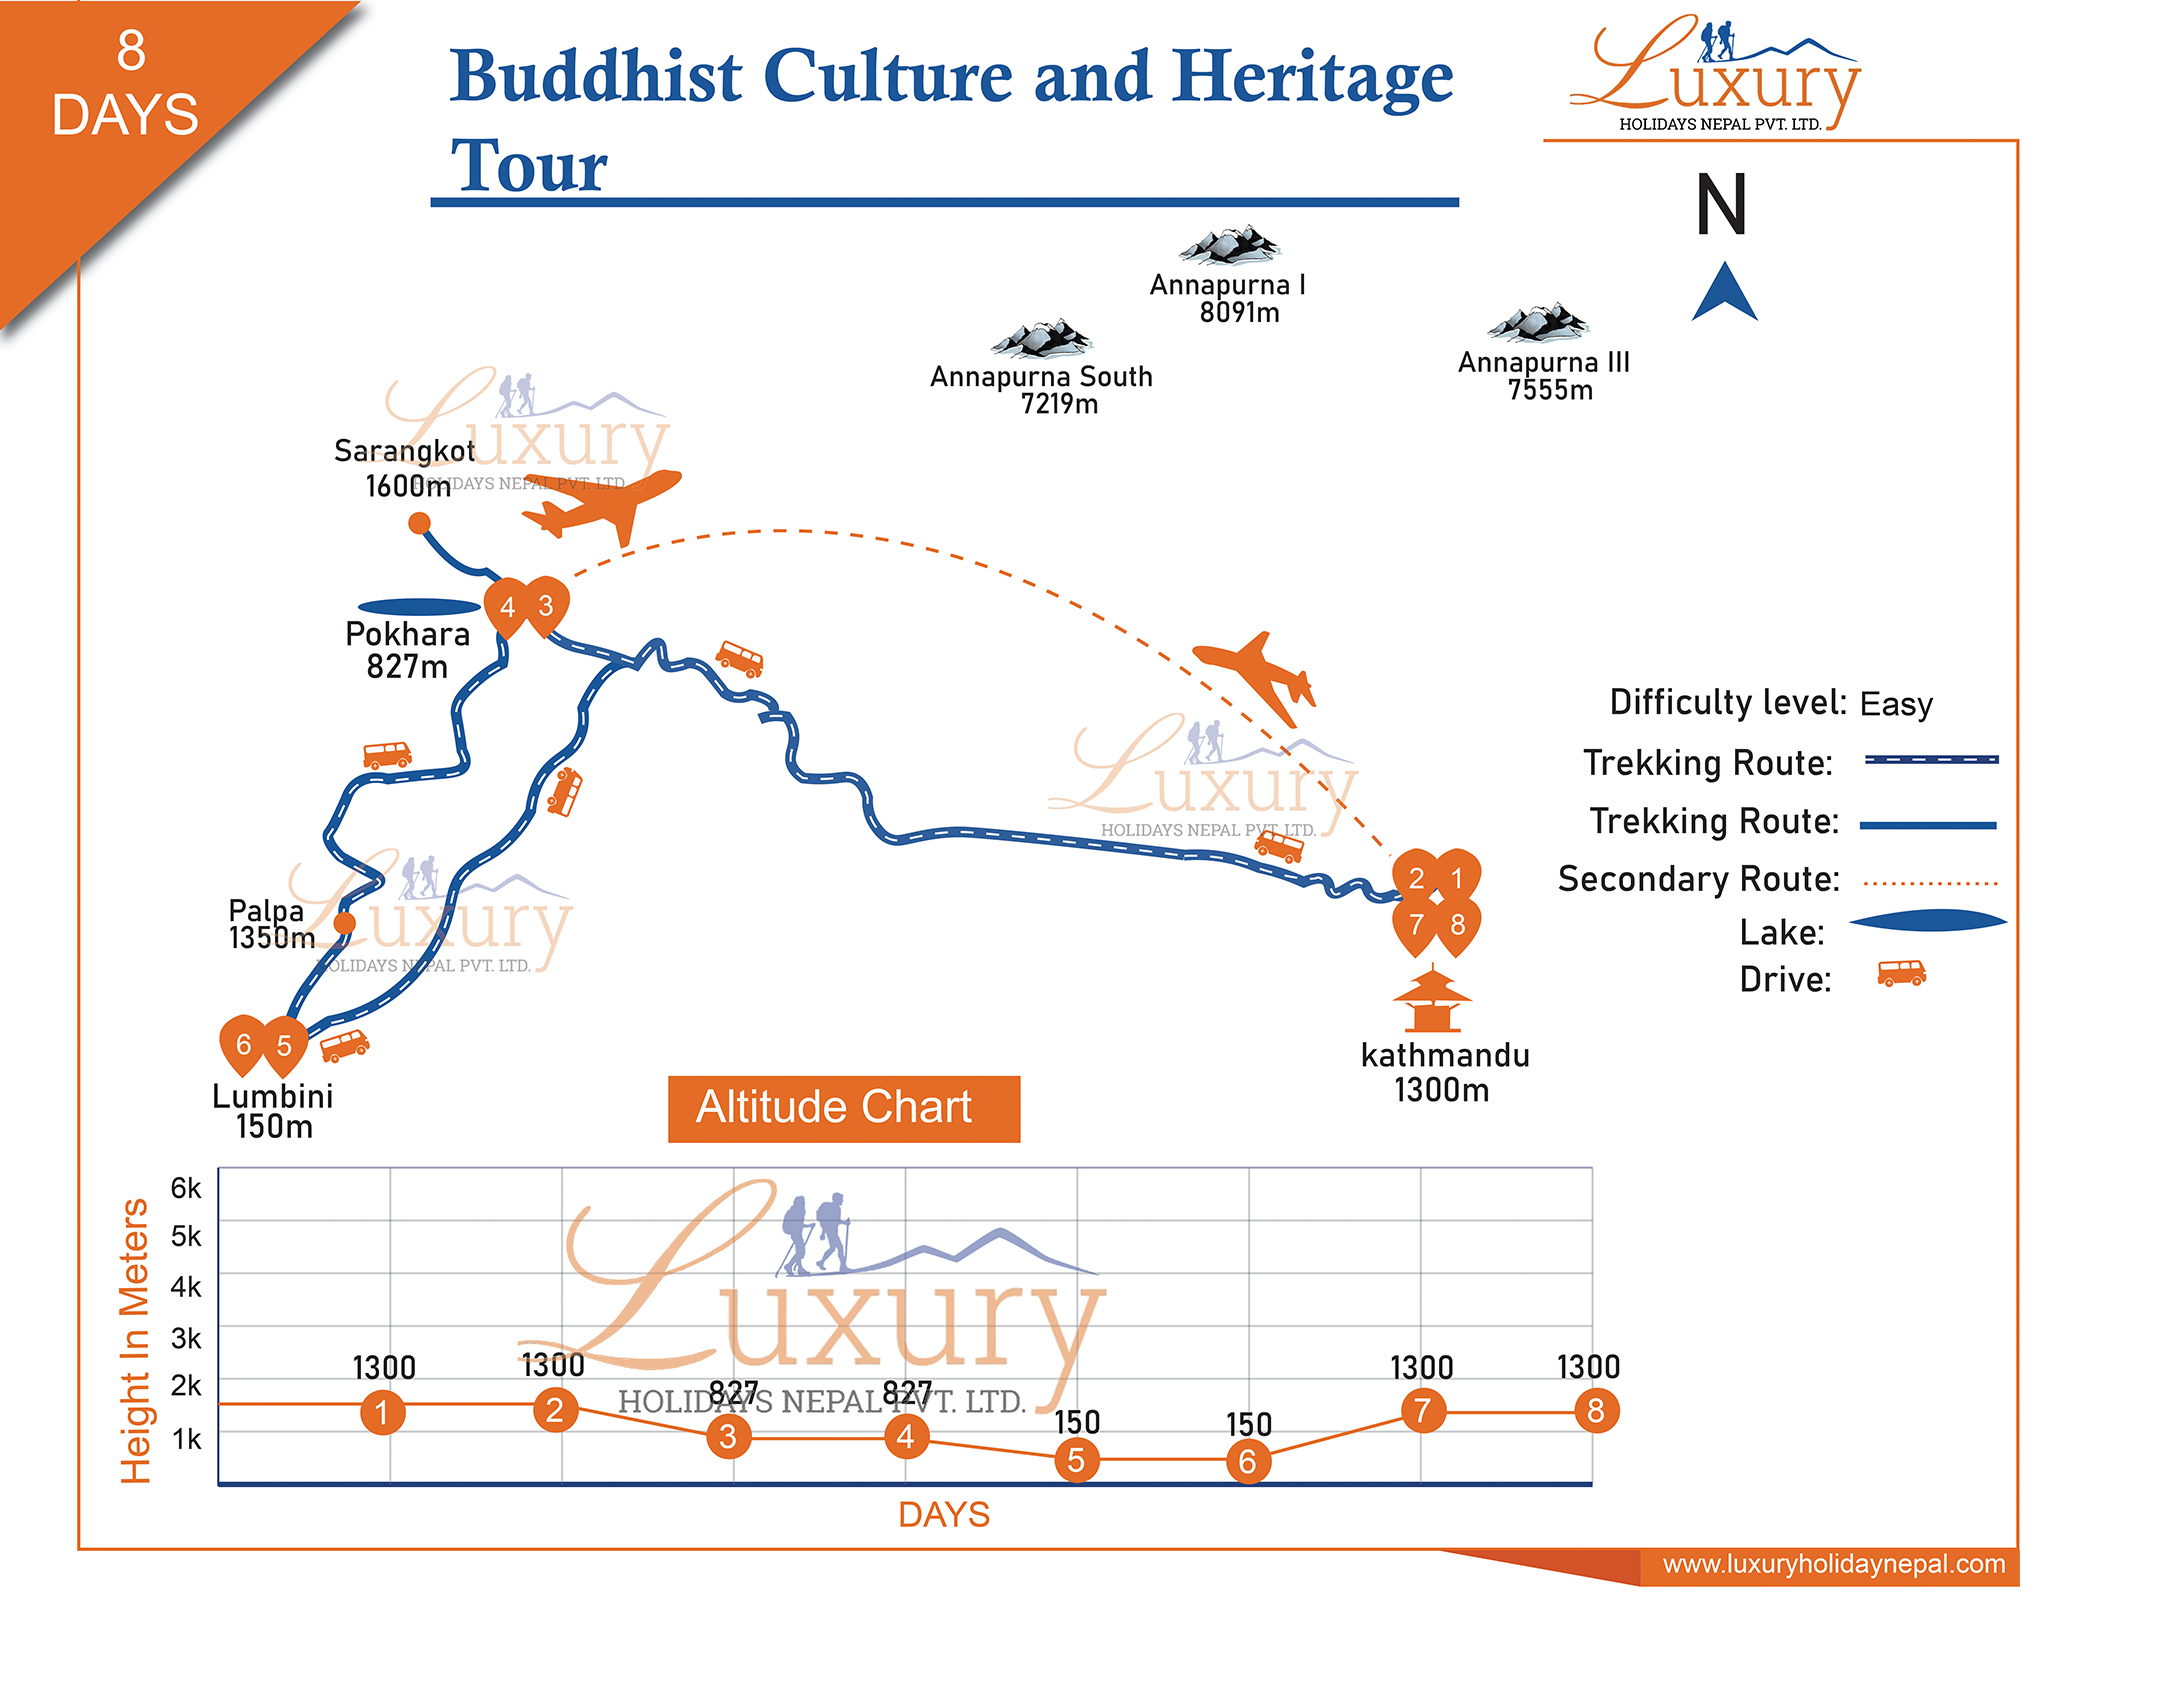 Buddhist Culture and Heritage Tour Trip Map